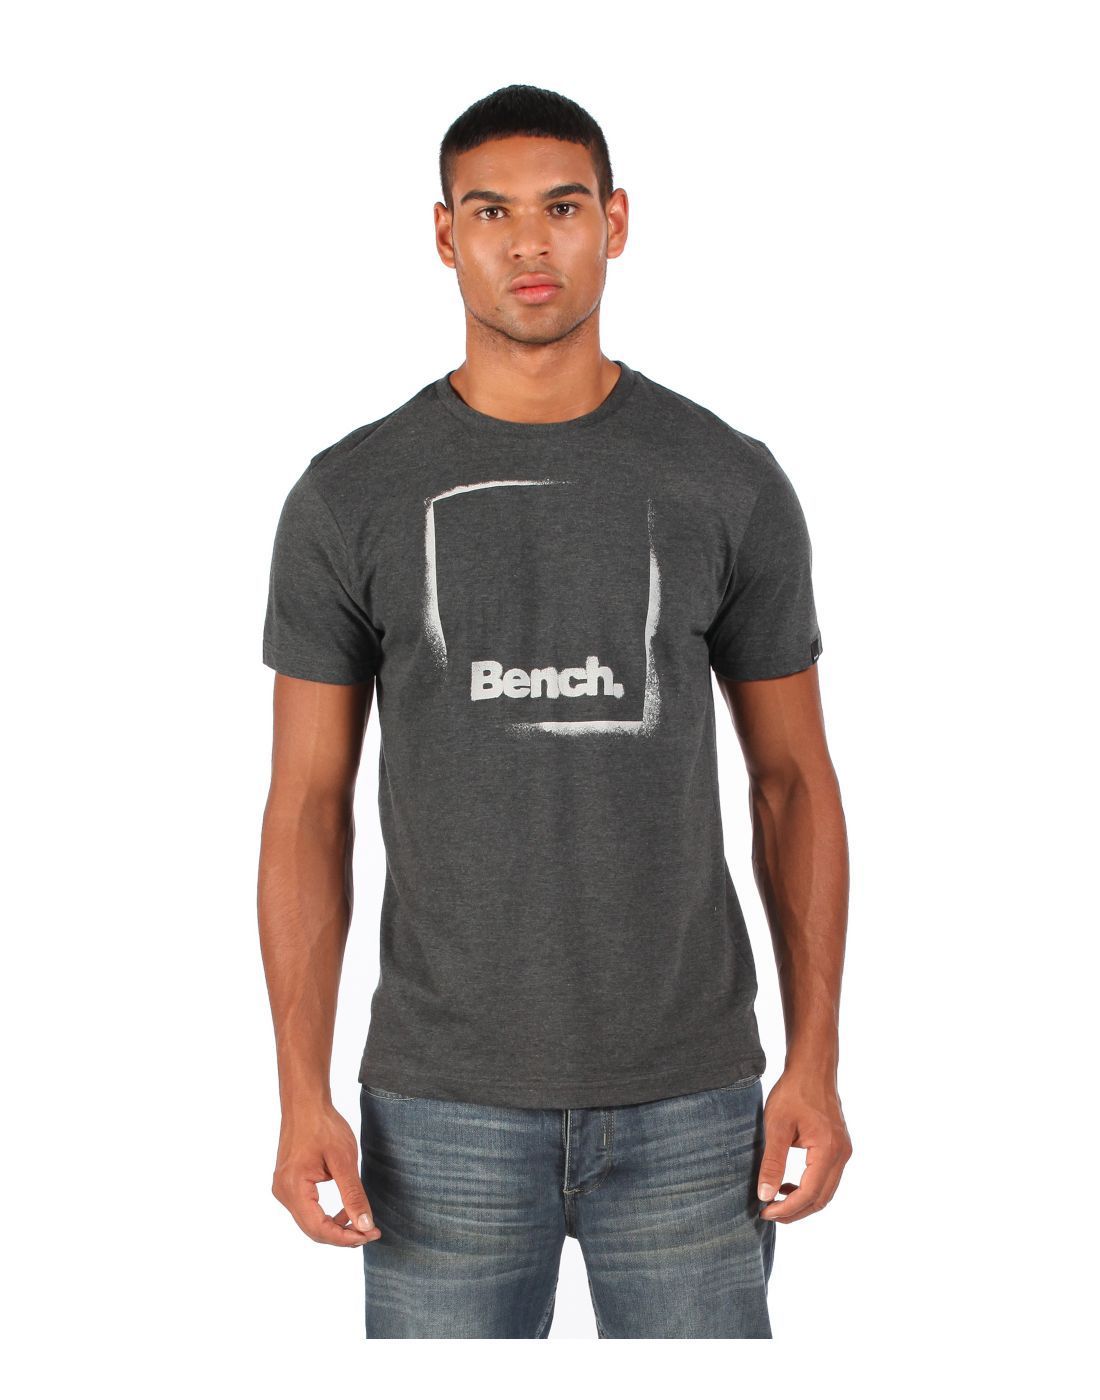 Vetements Pour Hommes Bench Bench Clothing For Men Bench Clothing Mens Tops Mens Tshirts